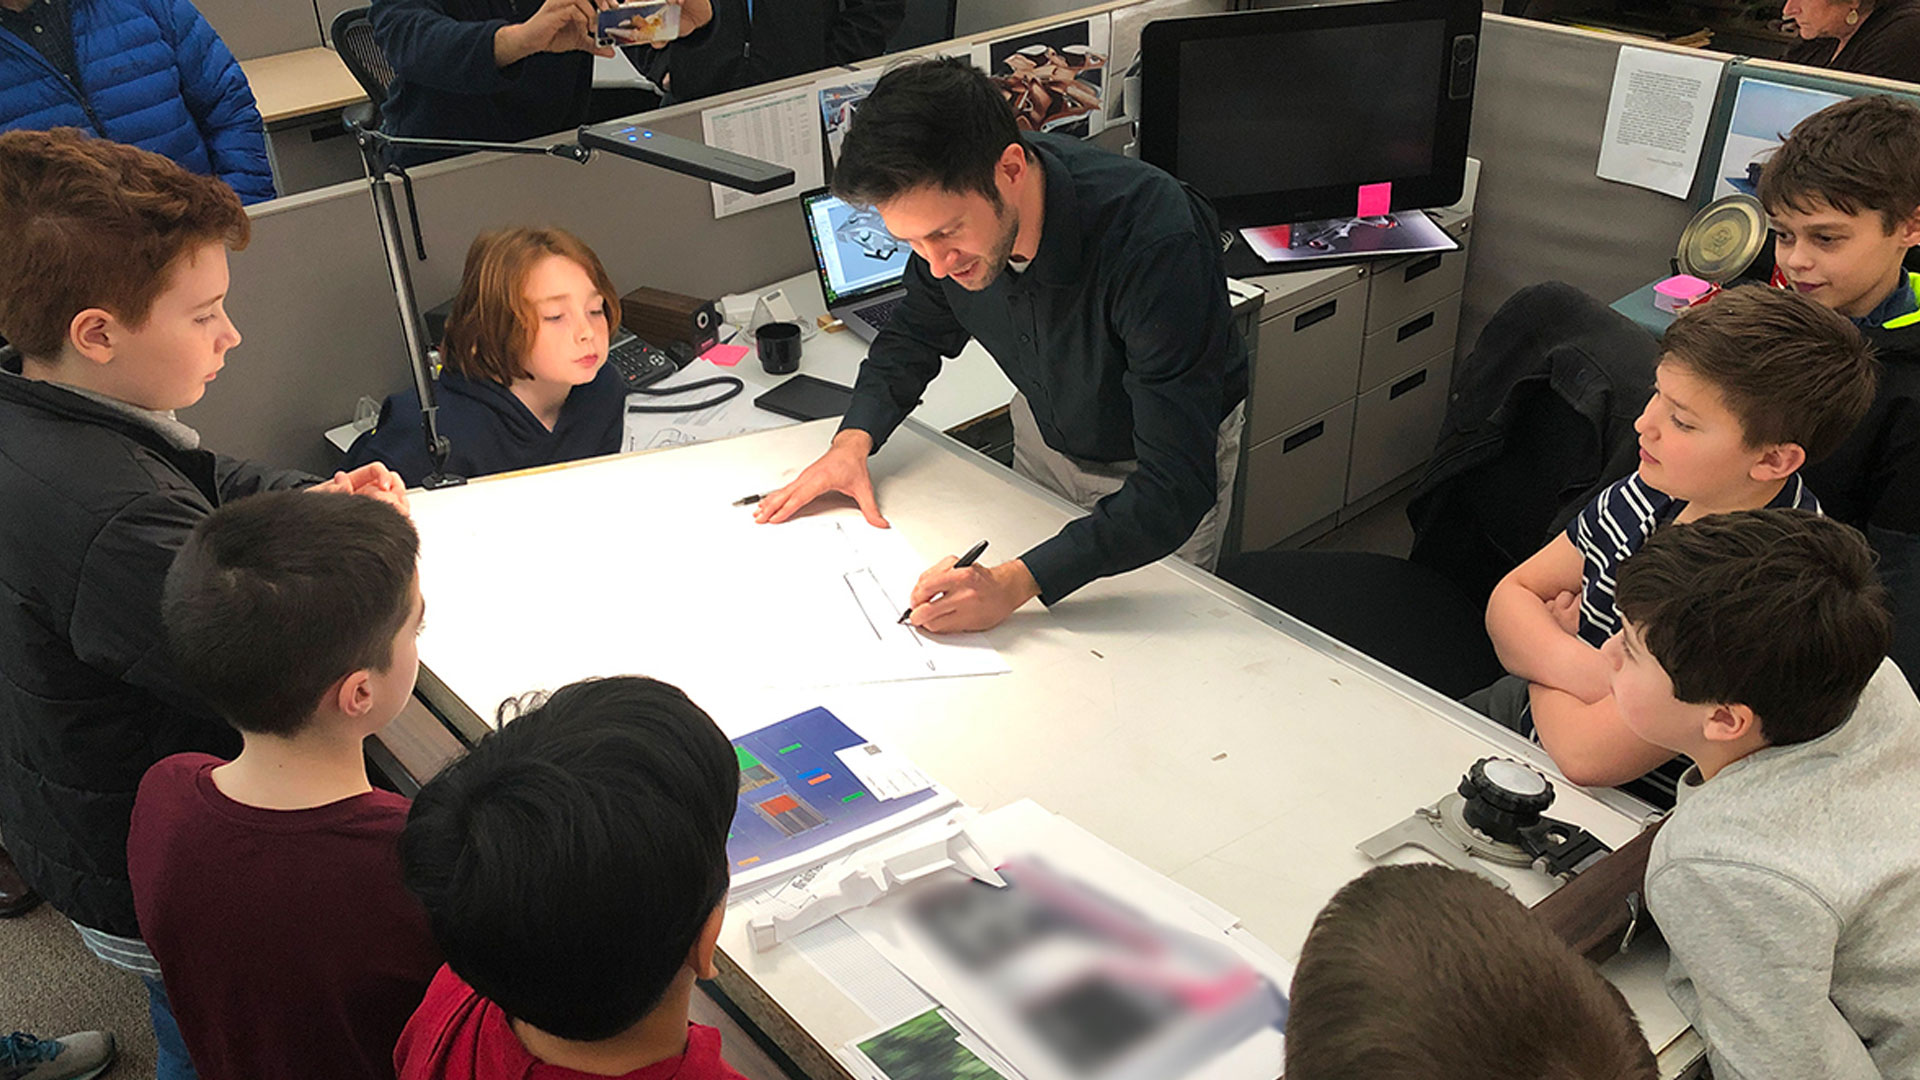 SF shares their passion for Industrial Design with Scouts